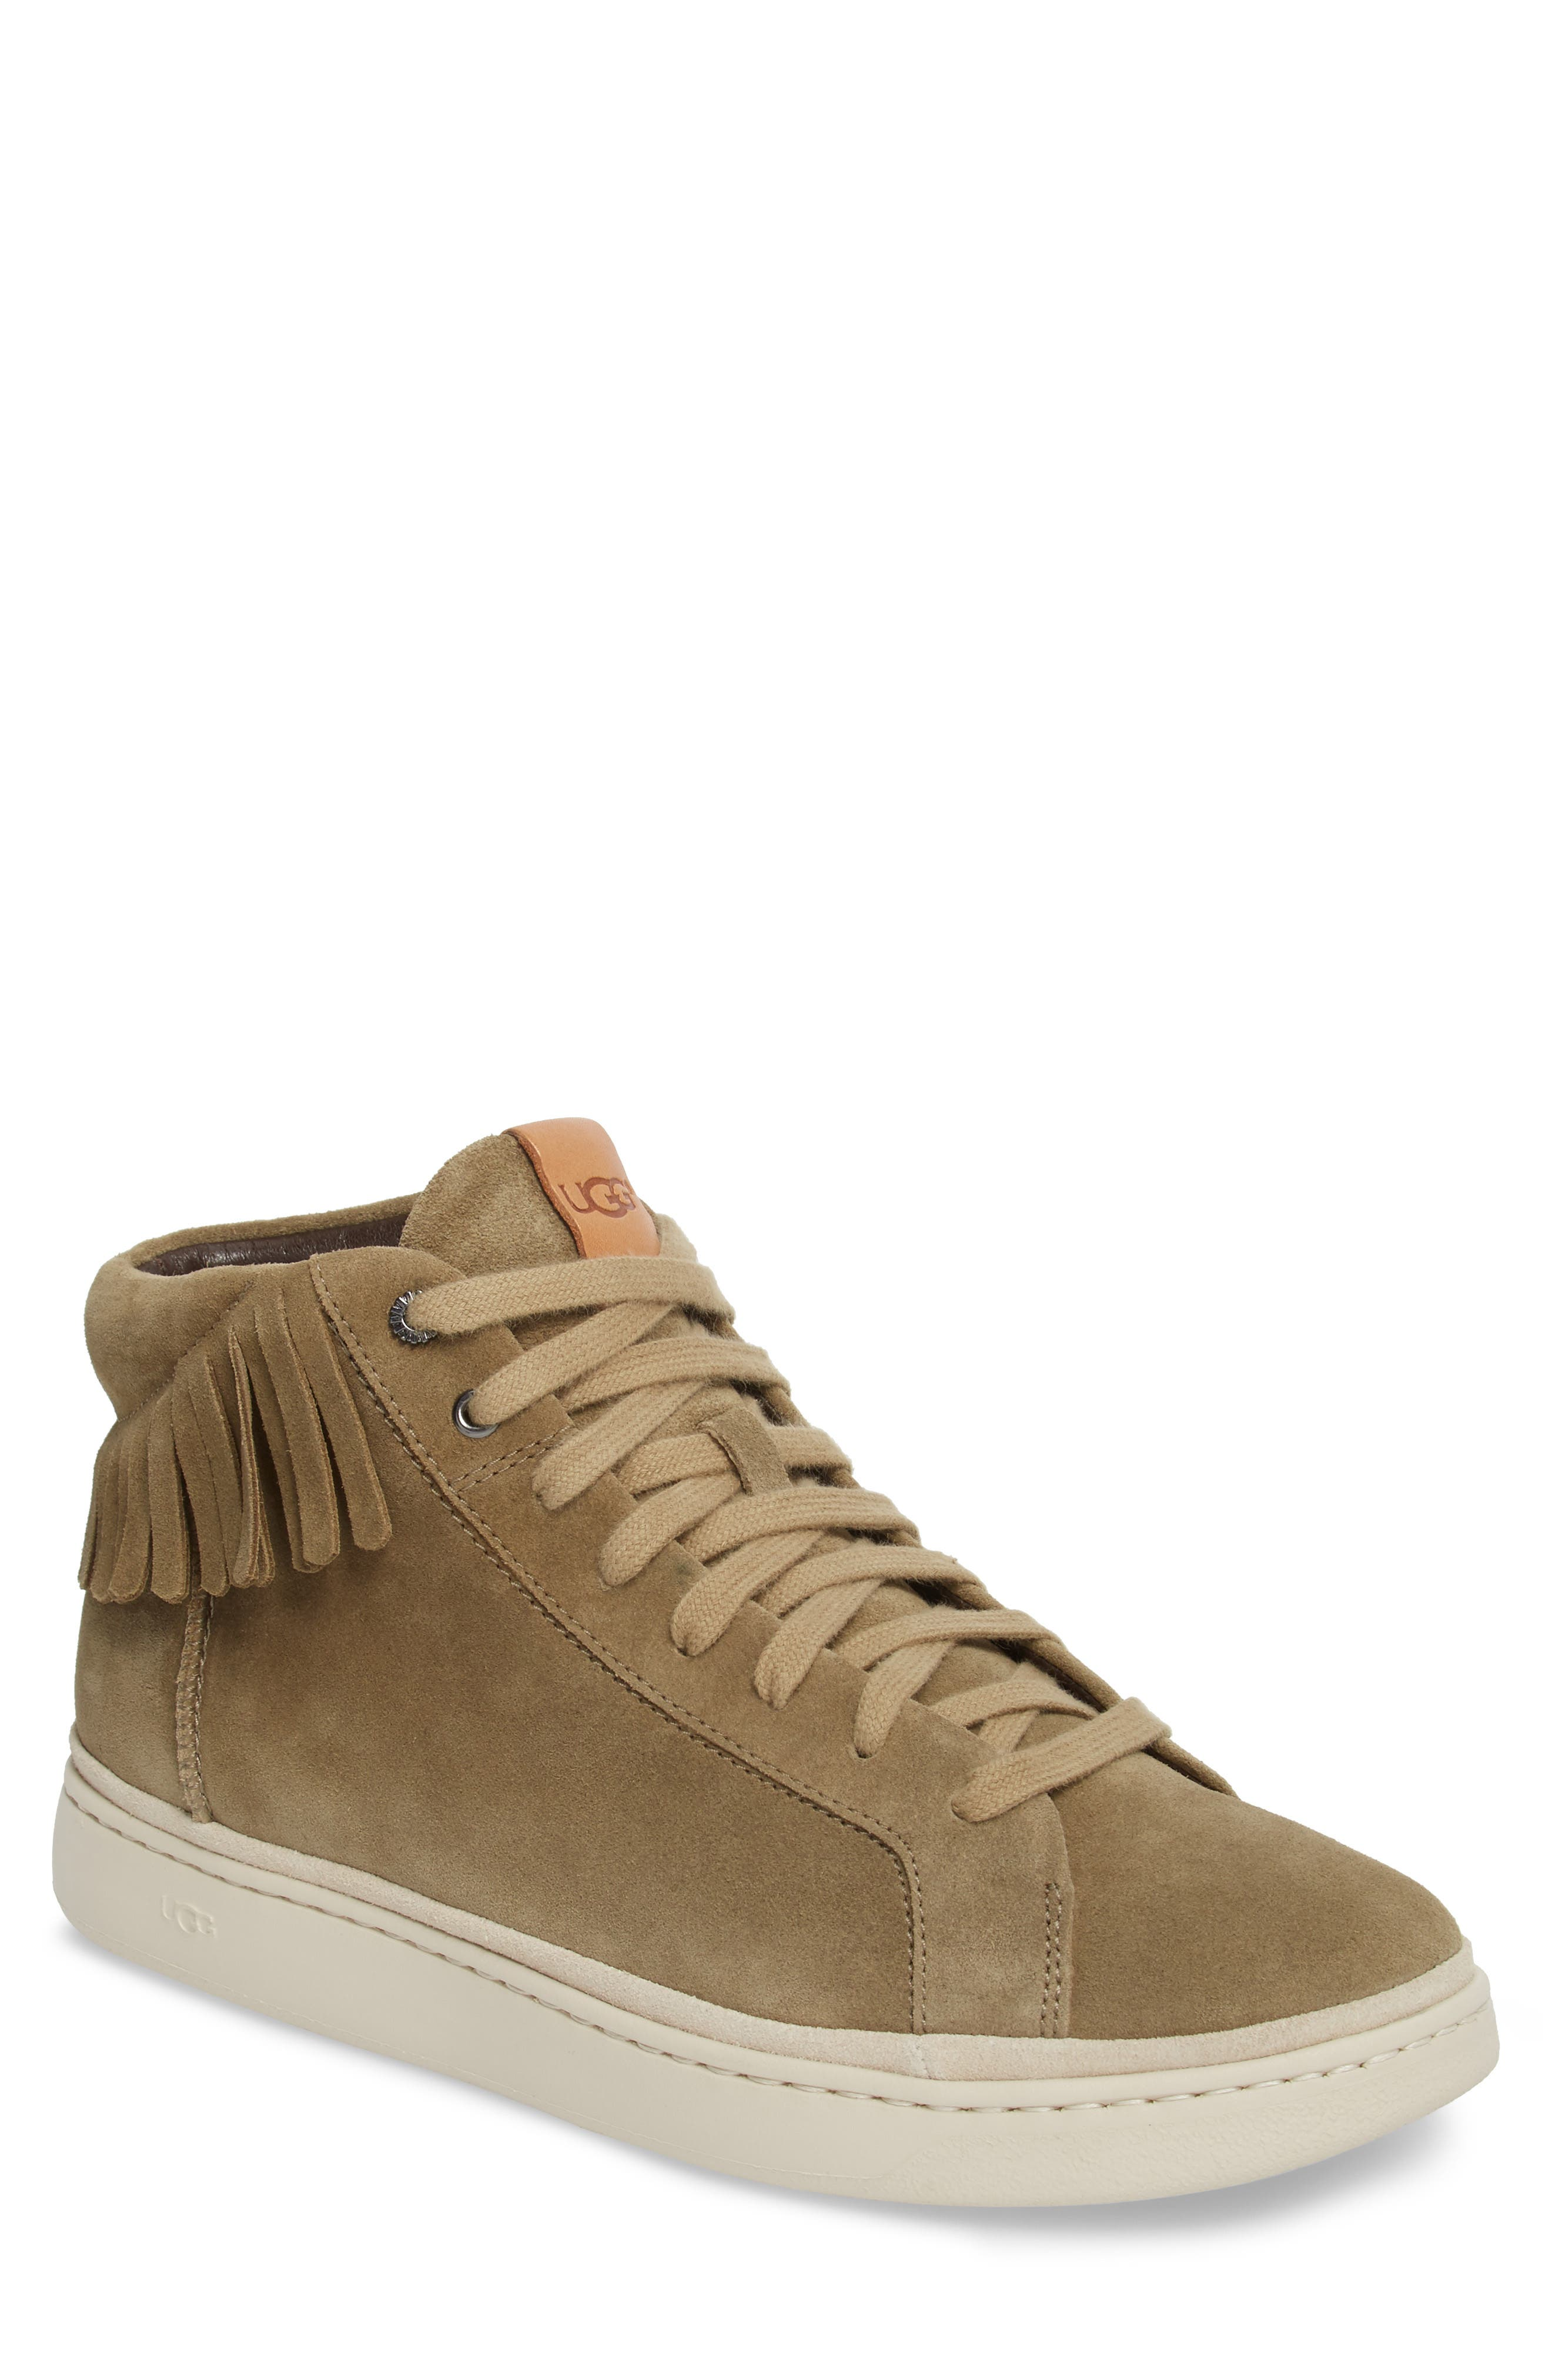 Alternate Image 1 Selected - UGG® Brecken Fringe High-Top Sneaker (Men)